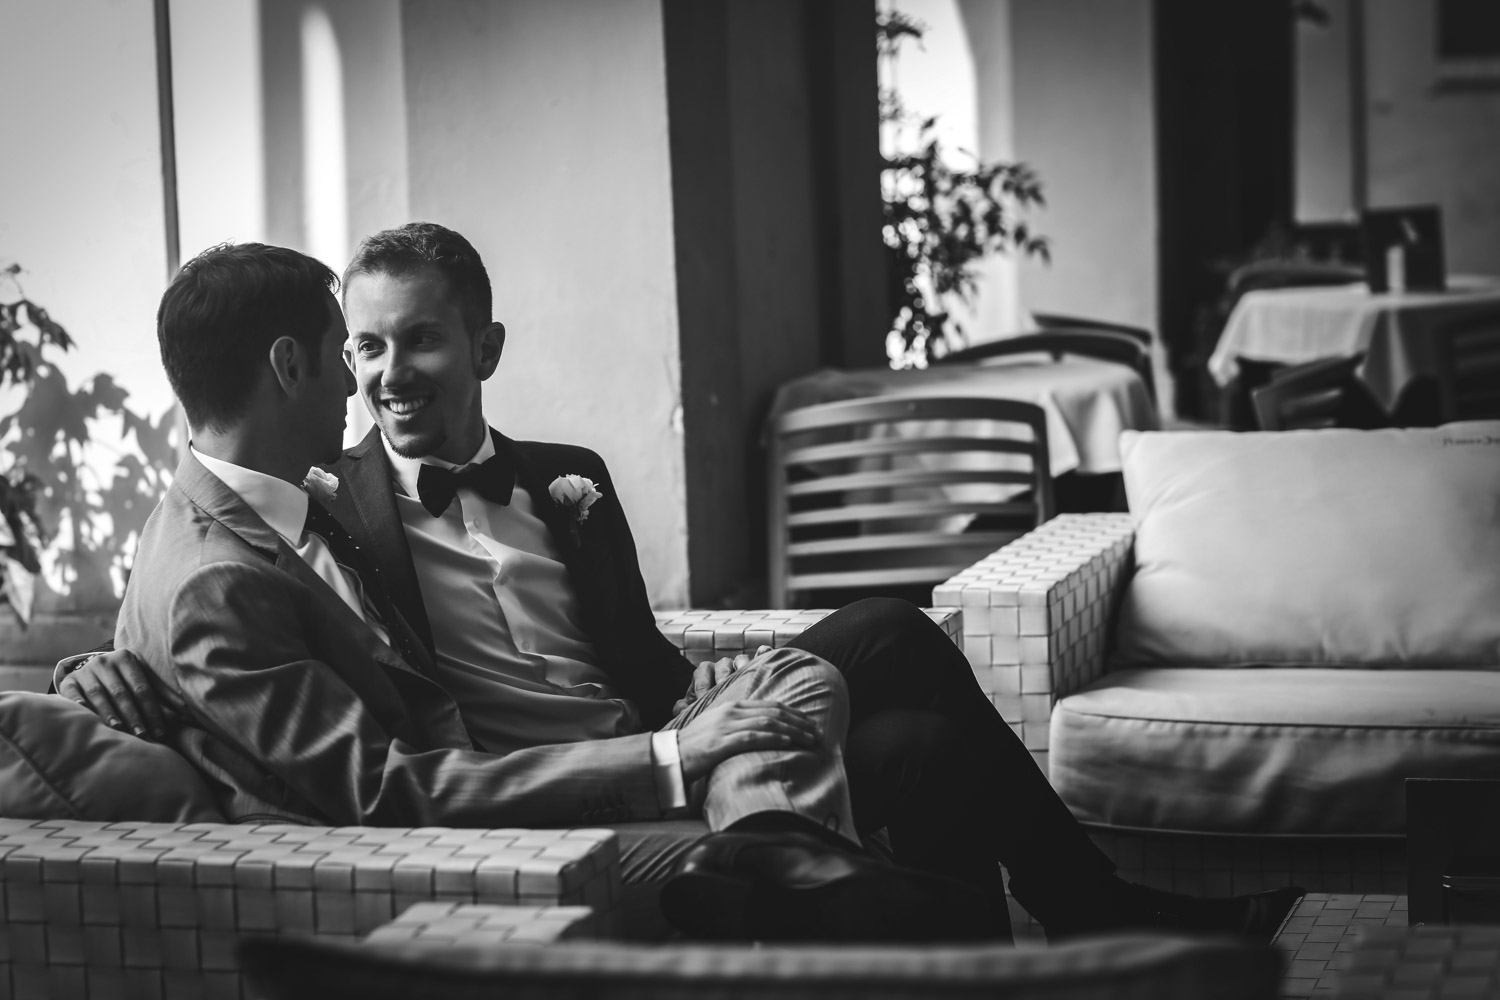 monica-sica_photography_trattoria-revelli_wedding-gay_torino_day_50